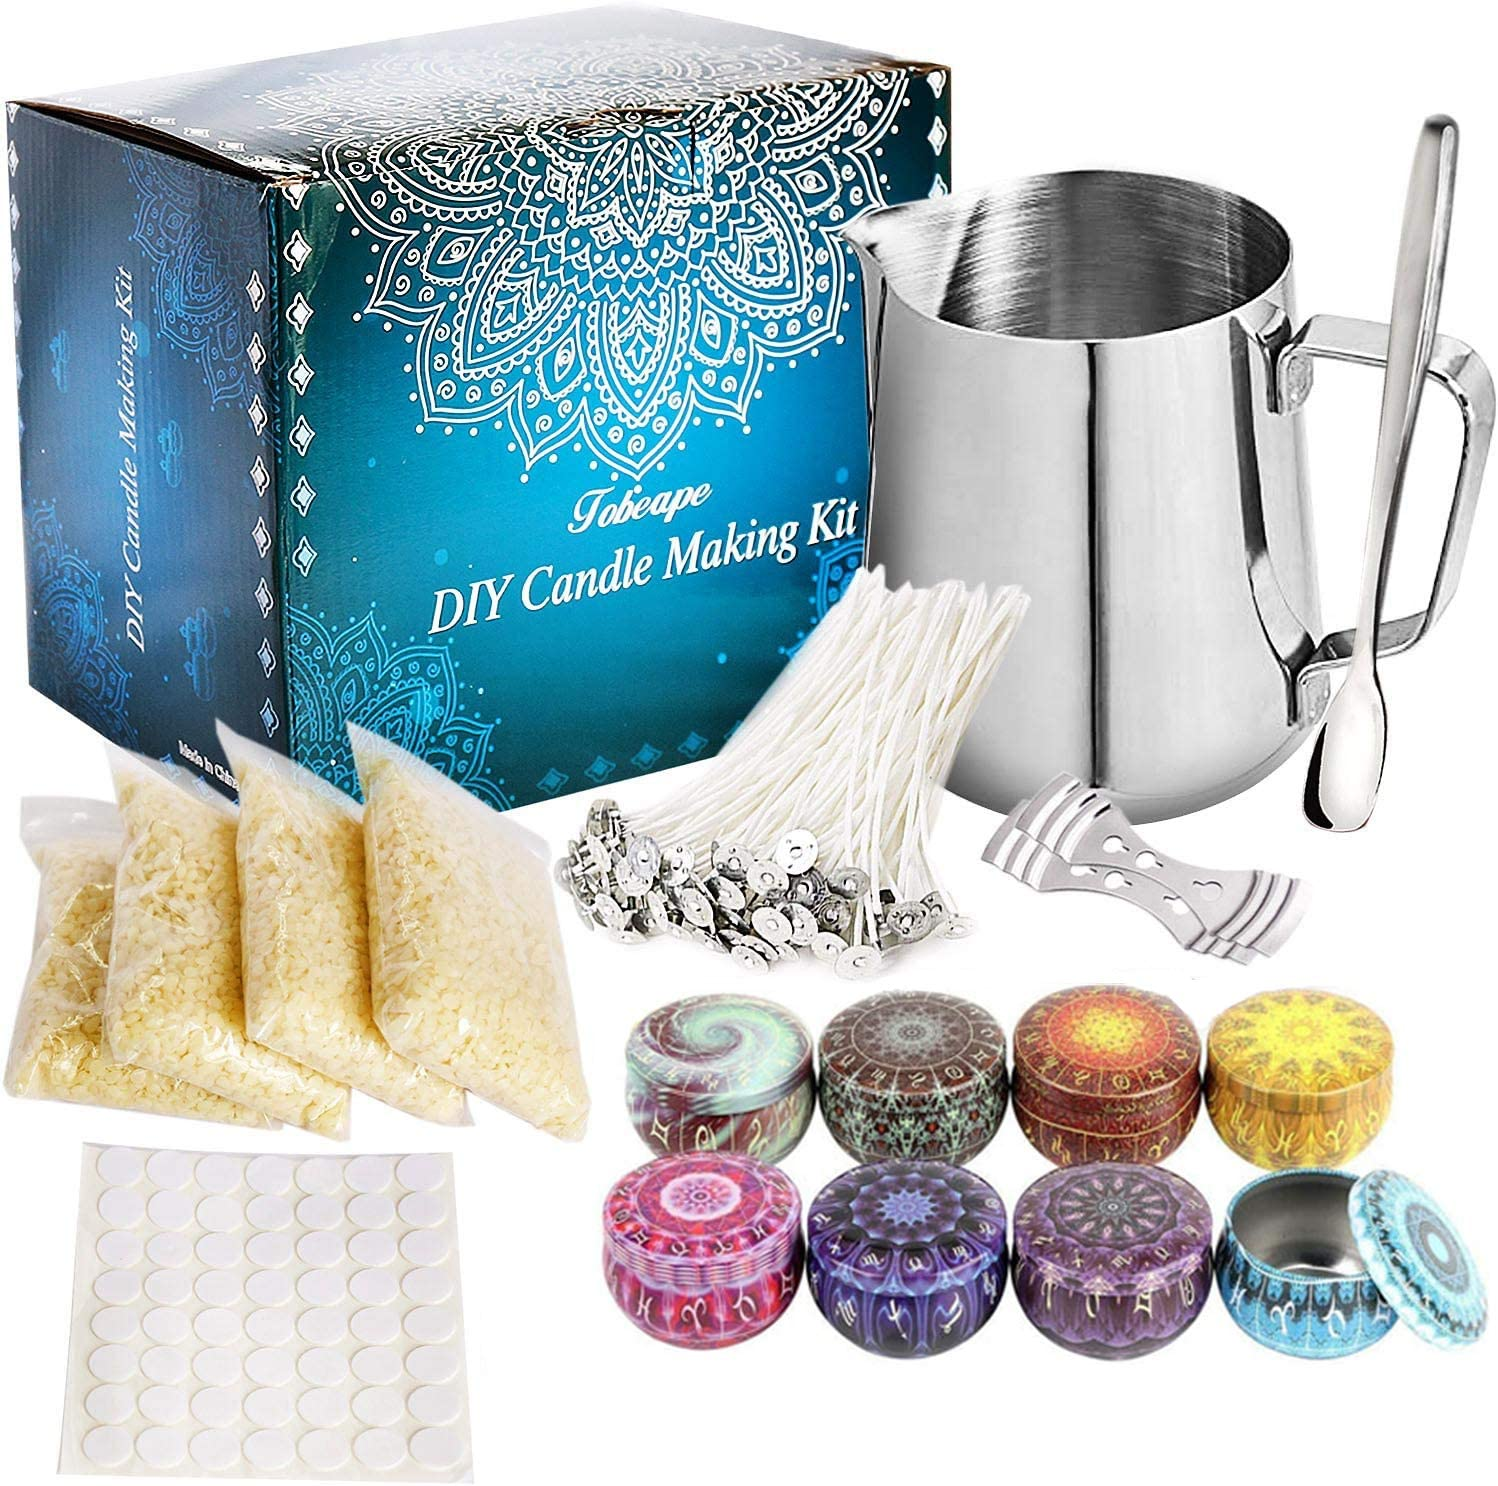 Beeswax Aebor DIY Candle Making Kit Supplies Candle Wicks Wicks Sticker Candle Craft Tools Includes Candle Make Pouring Pot Candles tins and Spoon. Candle Wicks Holder